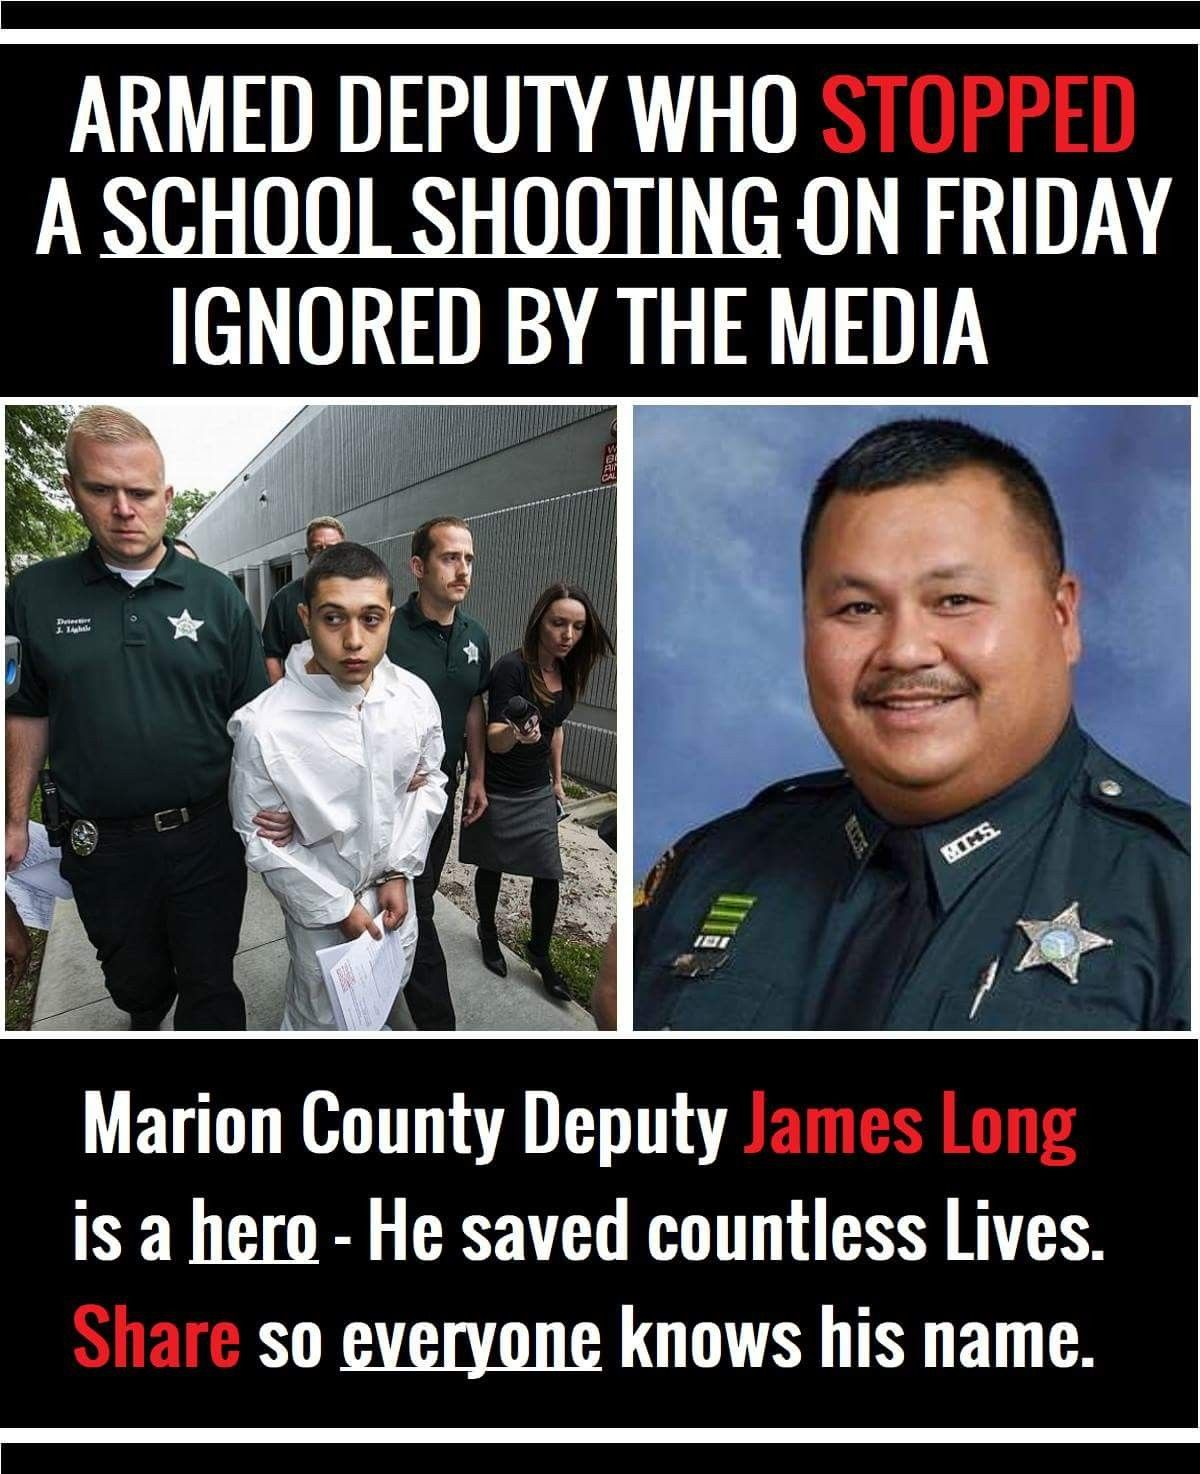 Well it was more important for the msm to focus on David Hogg